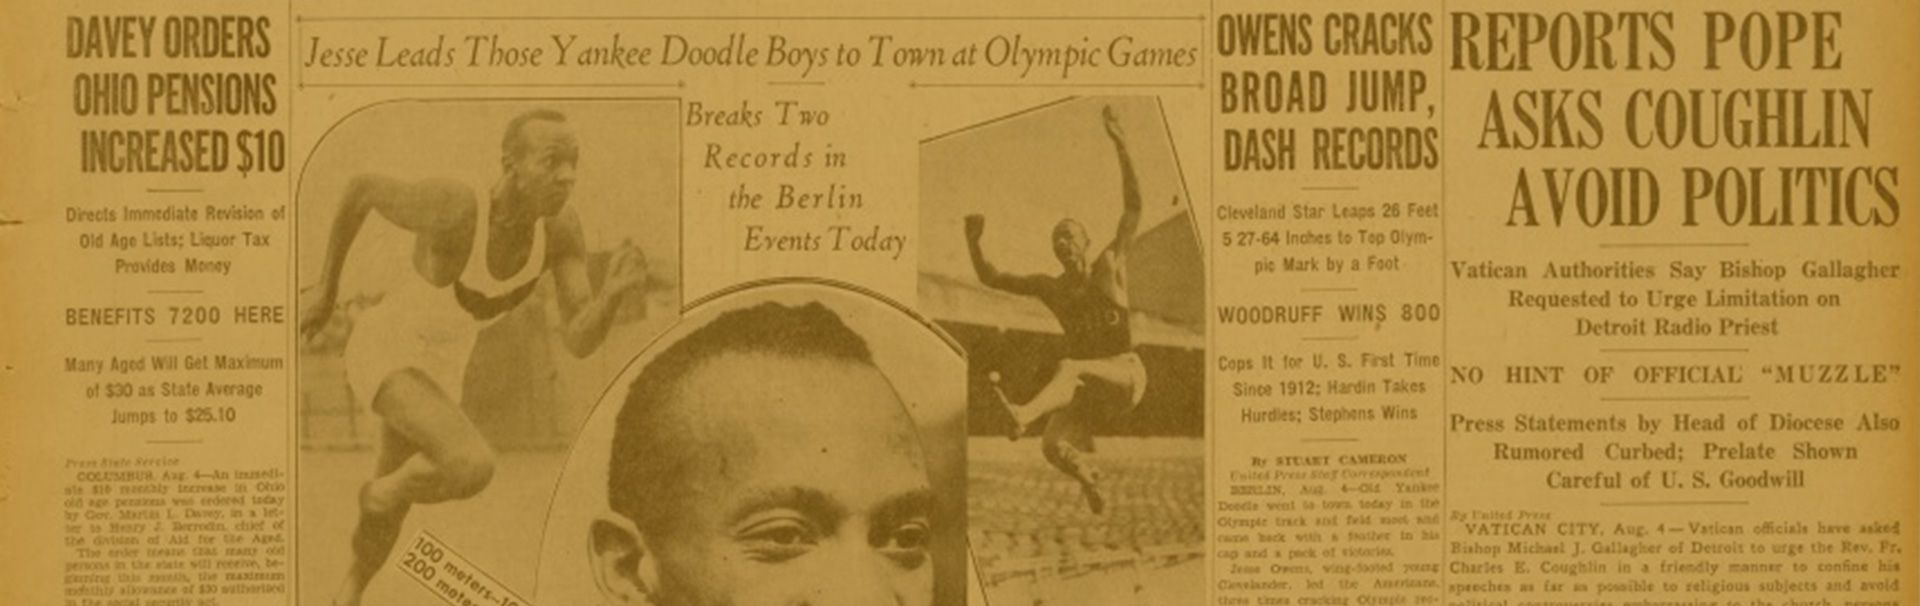 Extrait du journal The Cleveland Press avec articles du Jesse Owens